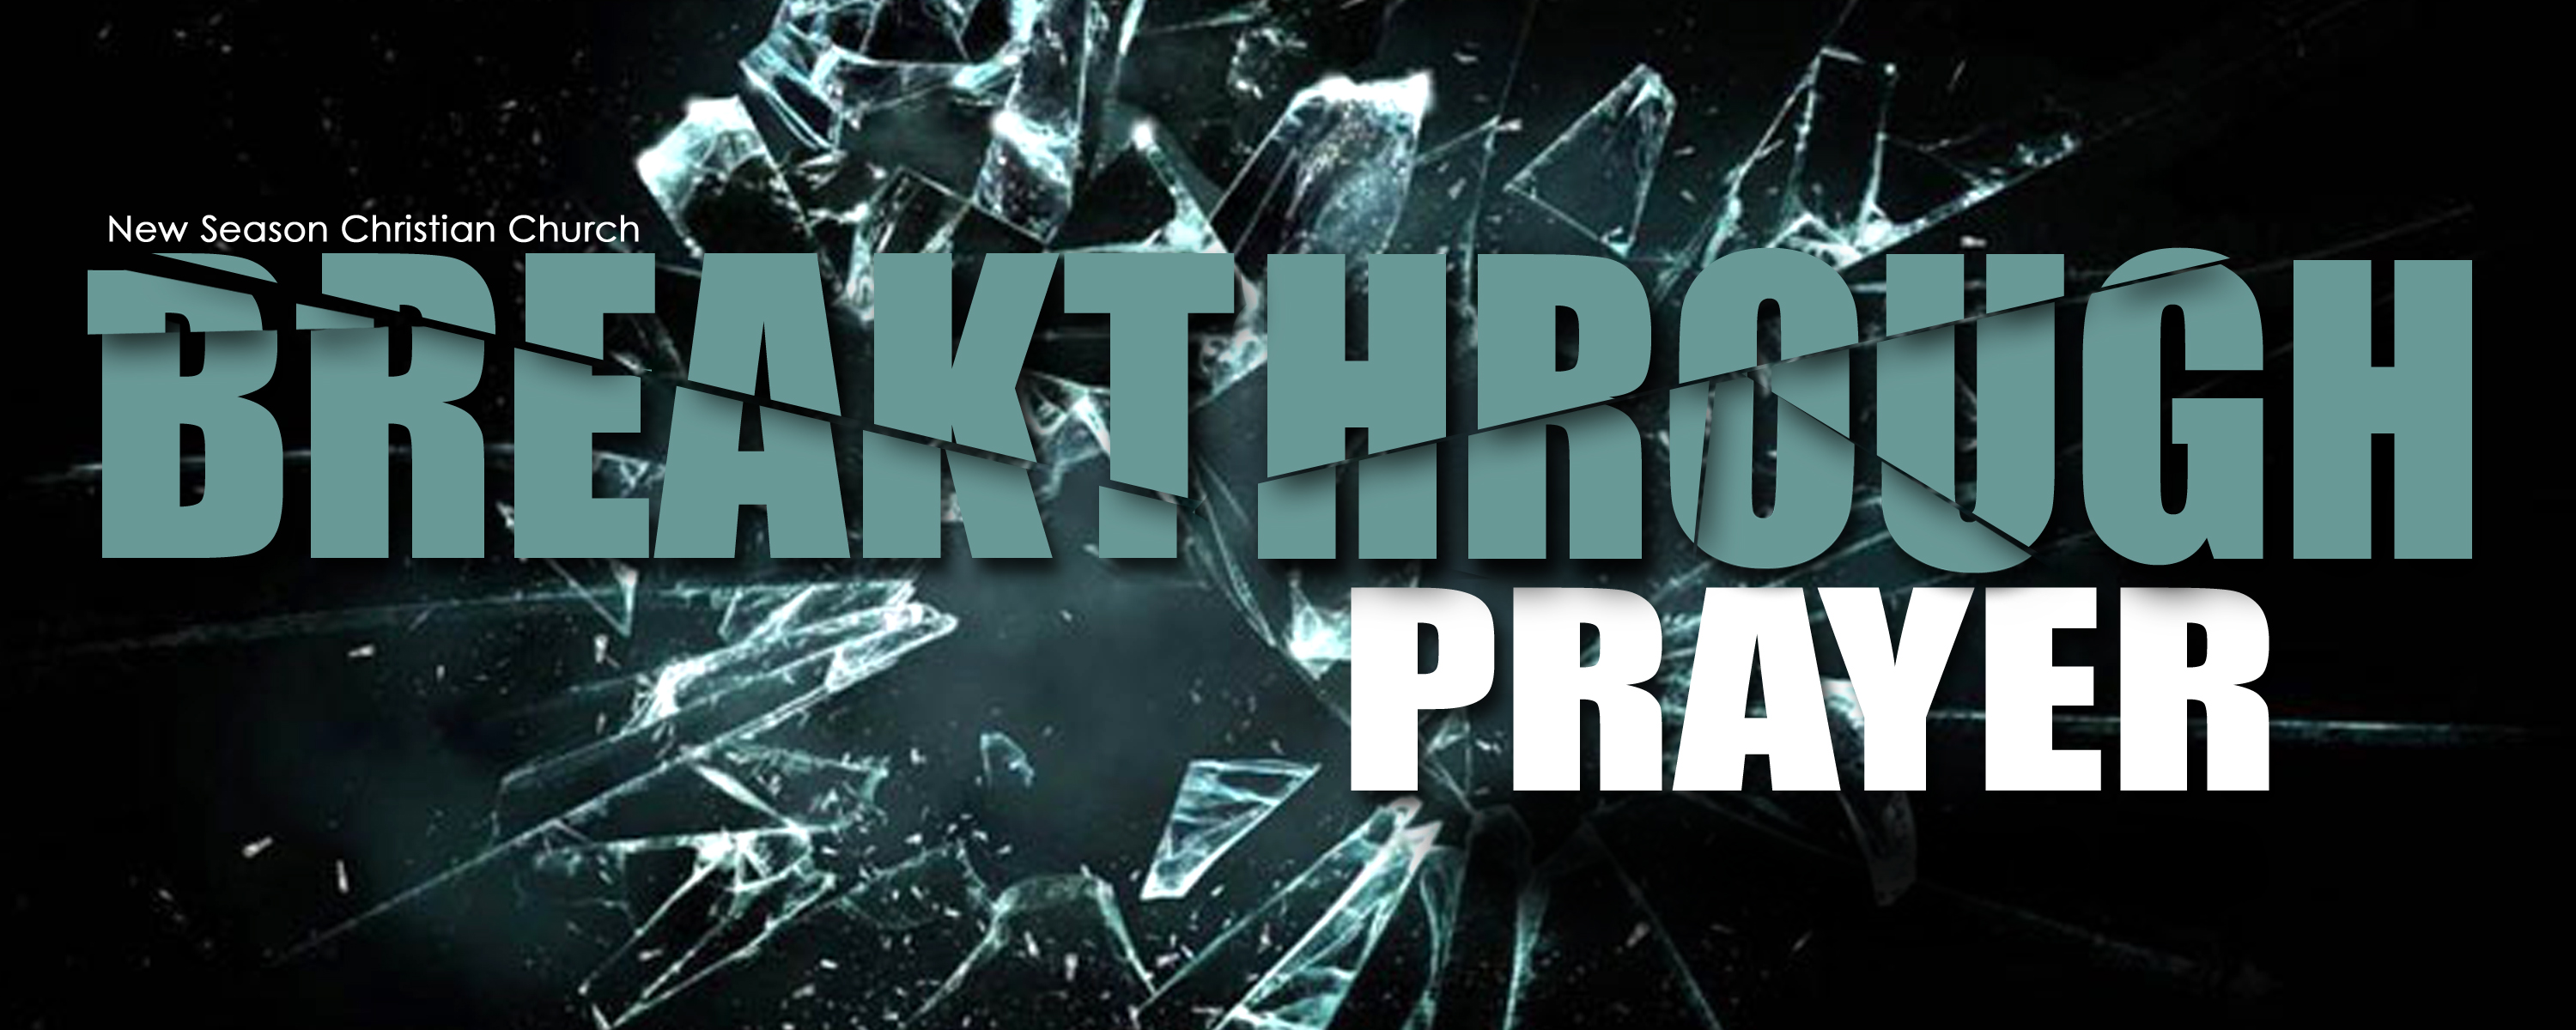 Breakthrough-prayer-banner2-copy